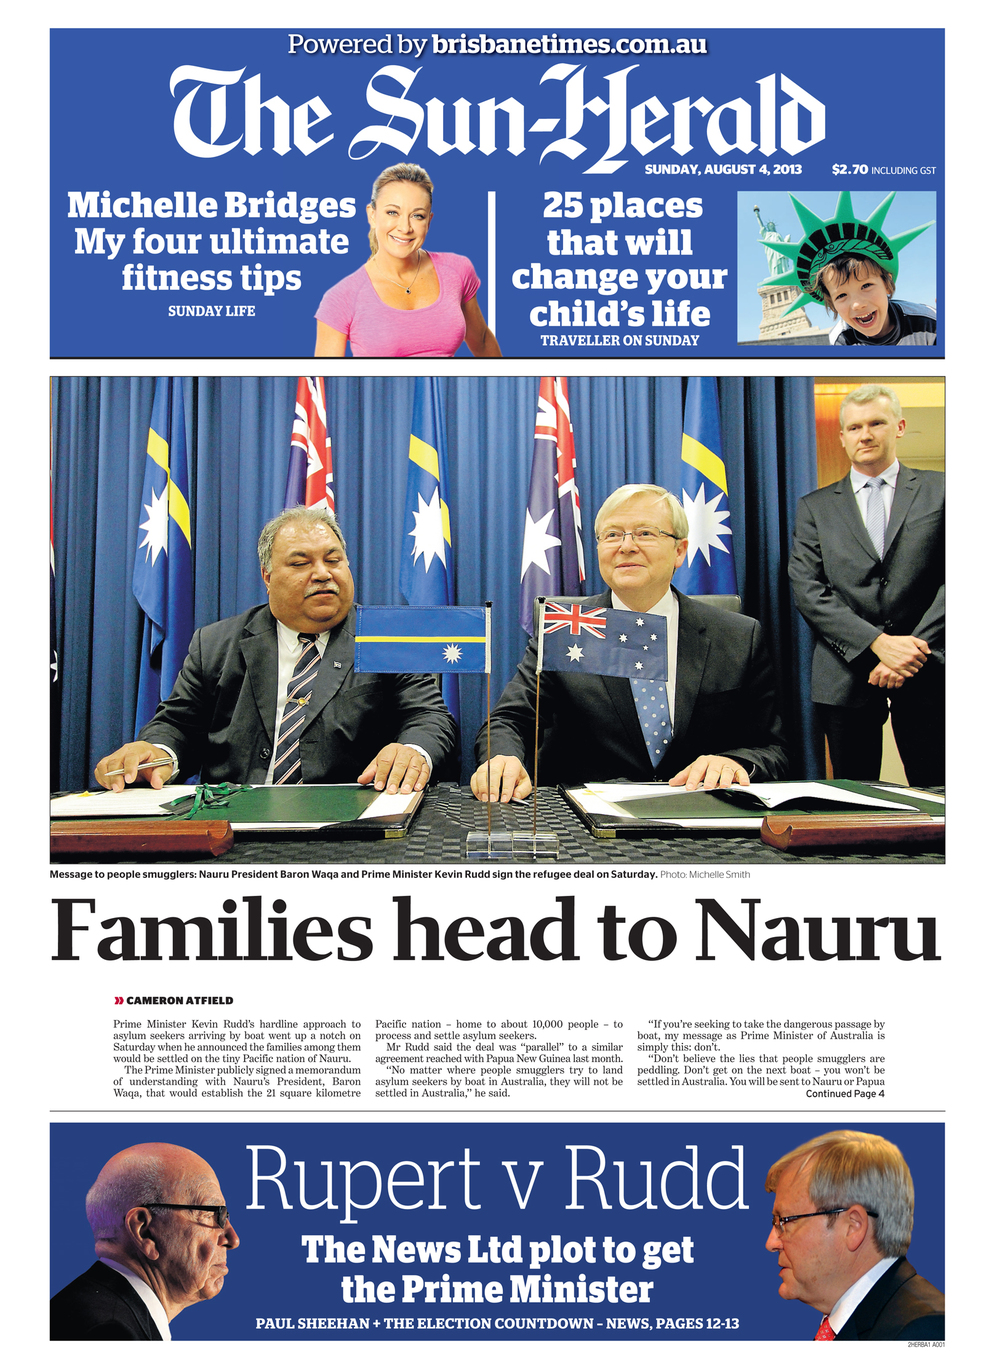 Nauru President Baron Waqa and Prime Minister Kevin Rudd signed a memorandum of understanding to deter people smugglers.